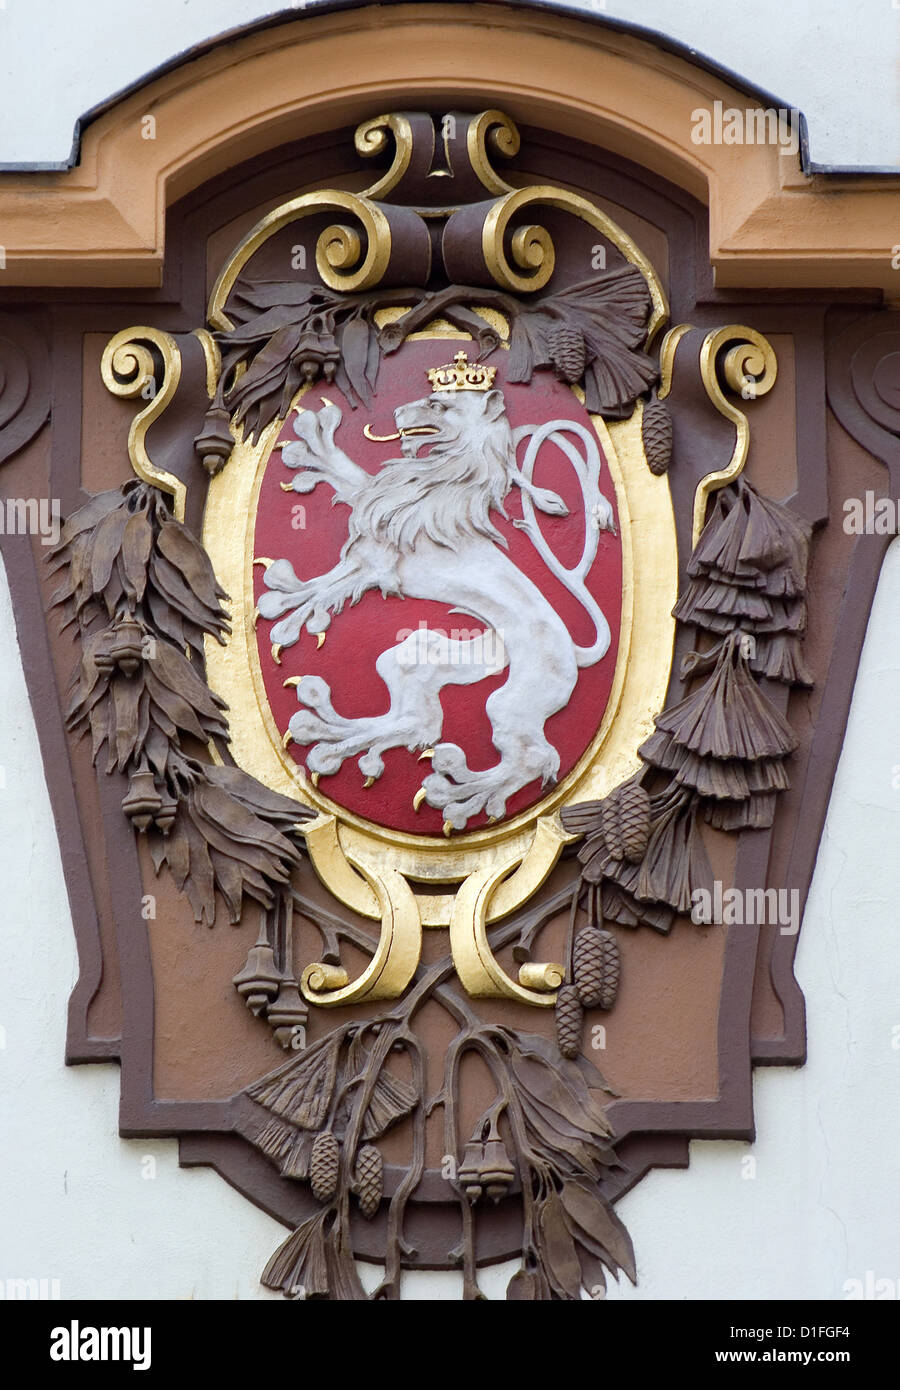 Prague - Czech national heraldry from house facade - Stock Image